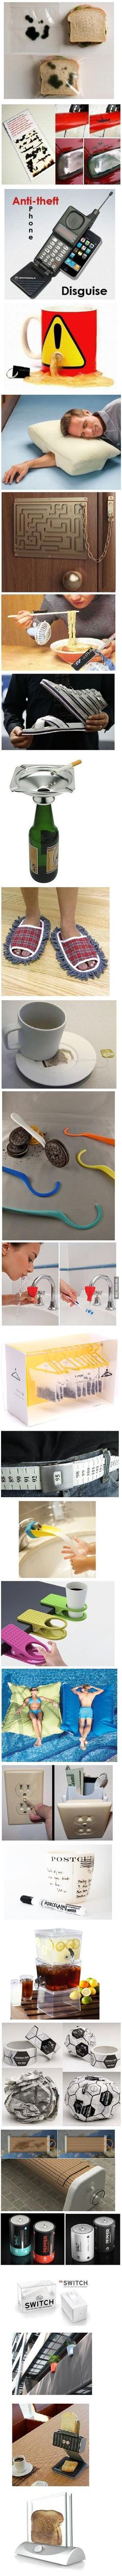 Awesome inventions